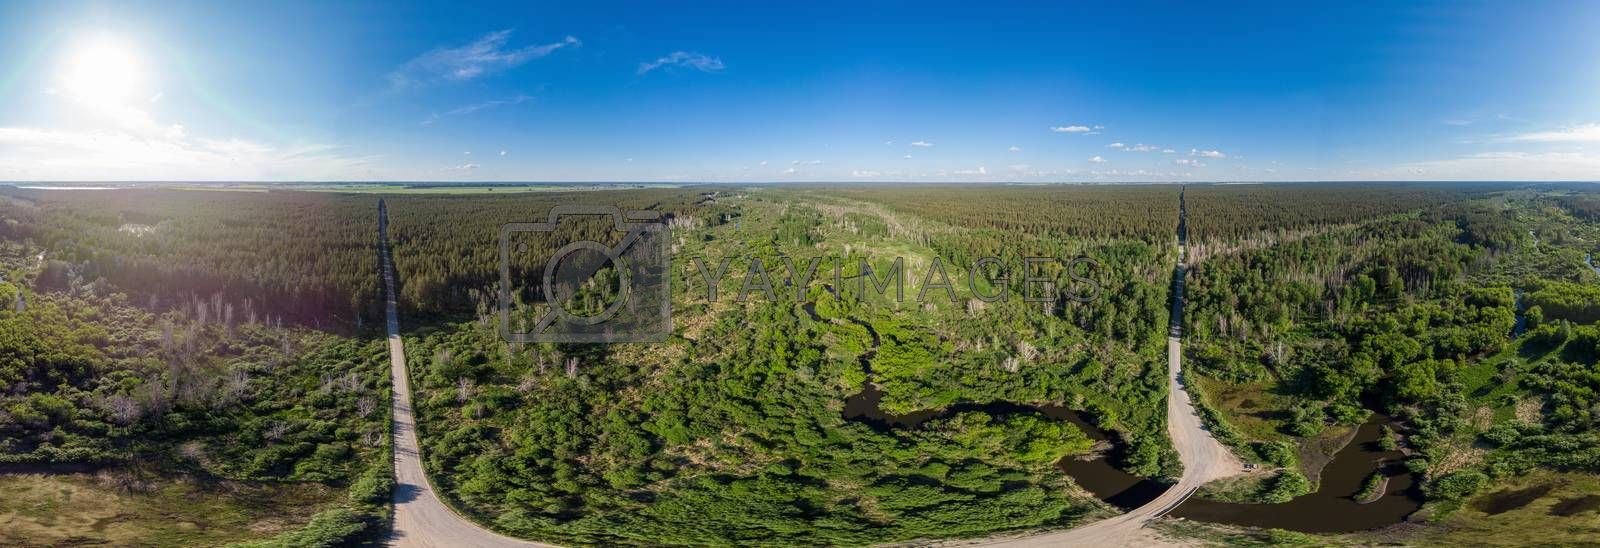 Full 360 equirectangular spherical panorama of aerial top vew with a beautiful landscape with a lake two roads, forest and river . Virtual reality content